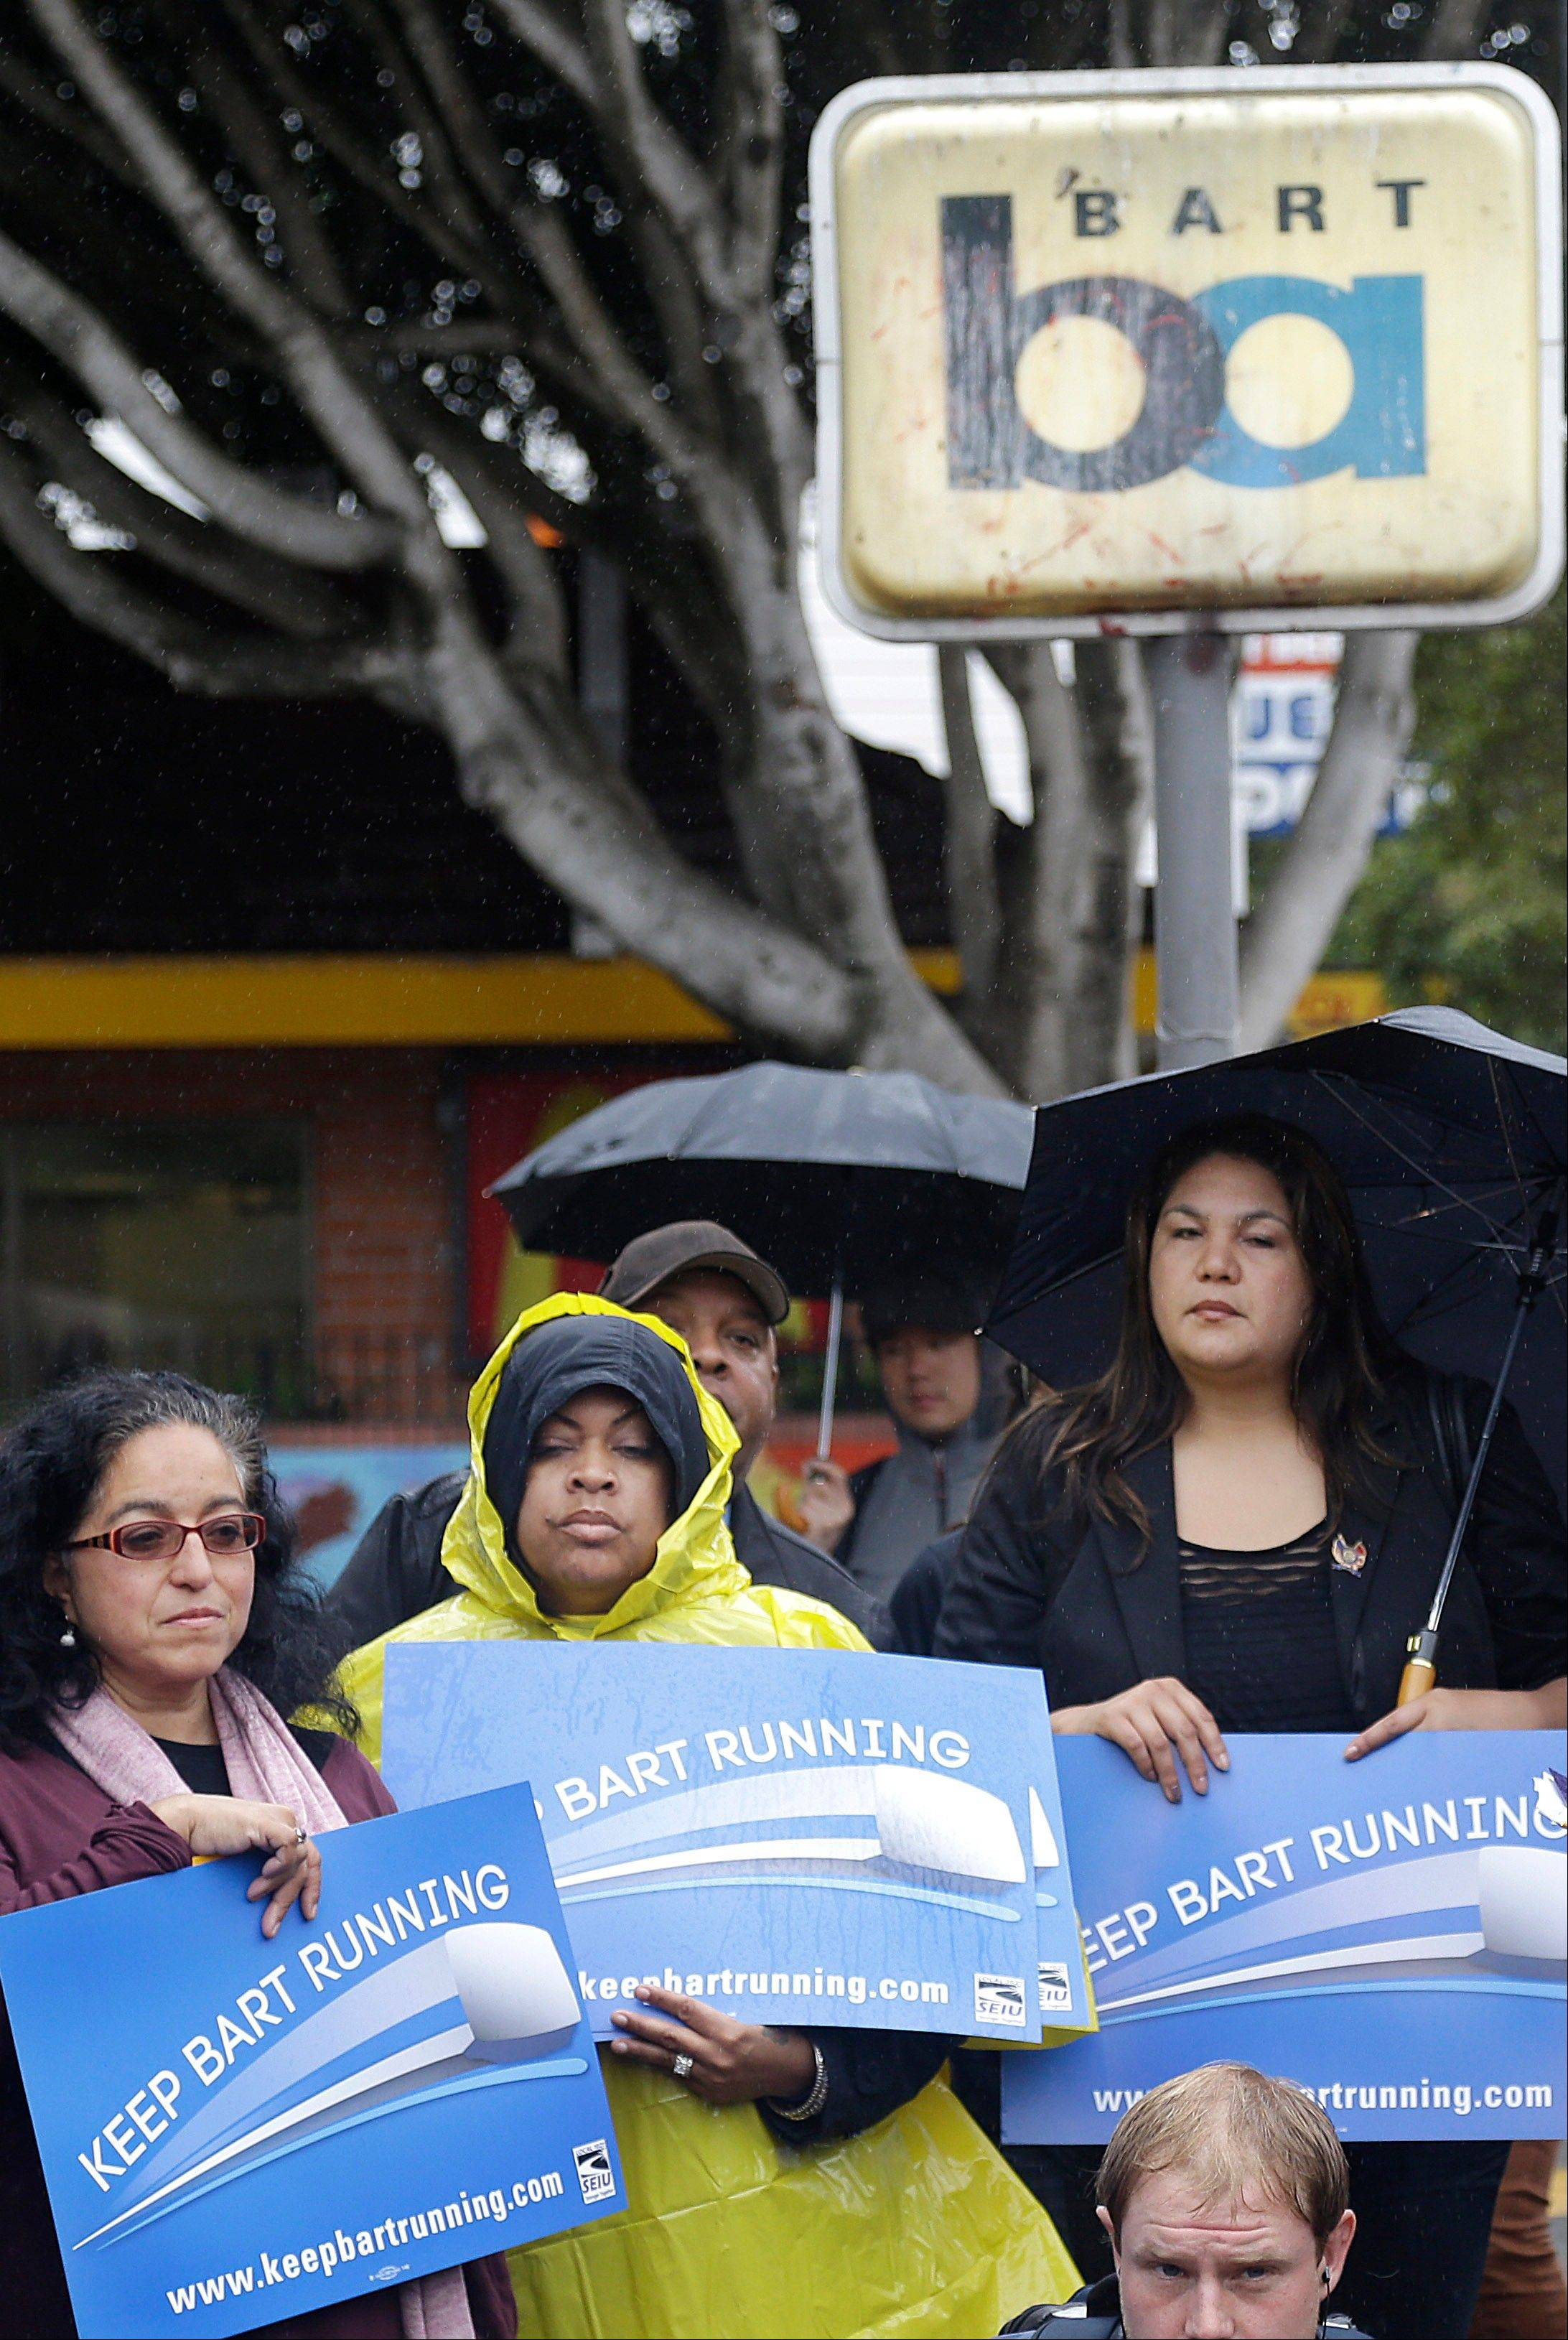 In this file photo from Tuesday, June 25, 2013, supporters of Bay Area Rapid Transit workers hold up signs at a news conference outside of the BART 24th Street Mission station in San Francisco. Hundreds of thousands of San Francisco Bay Area commuters got at least a temporary reprieve from a massive transit strike when Gov. Jerry Brown ordered an inquiry into a labor contract dispute.